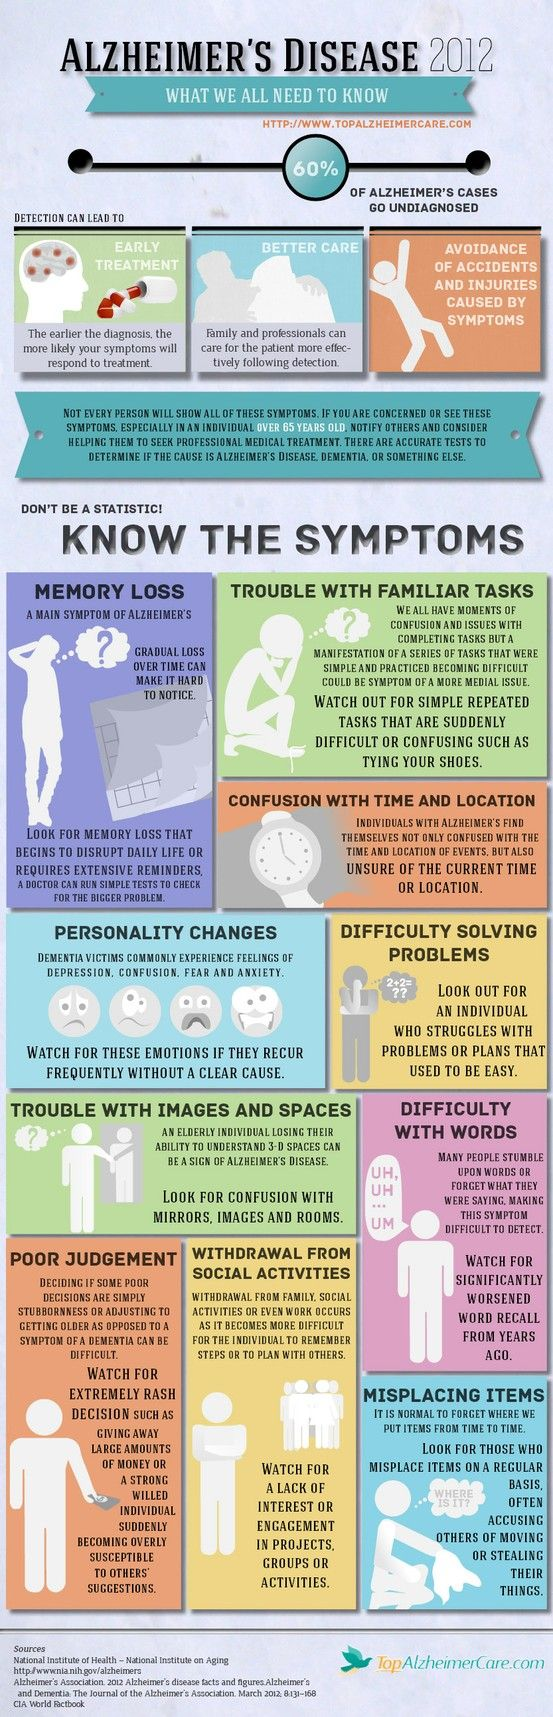 an introduction to the life with alzheimers disease Changes in memory can occur as we get older some changes are normal, whereas others might signal the onset of alzheimer's disease or some other form of dementia.